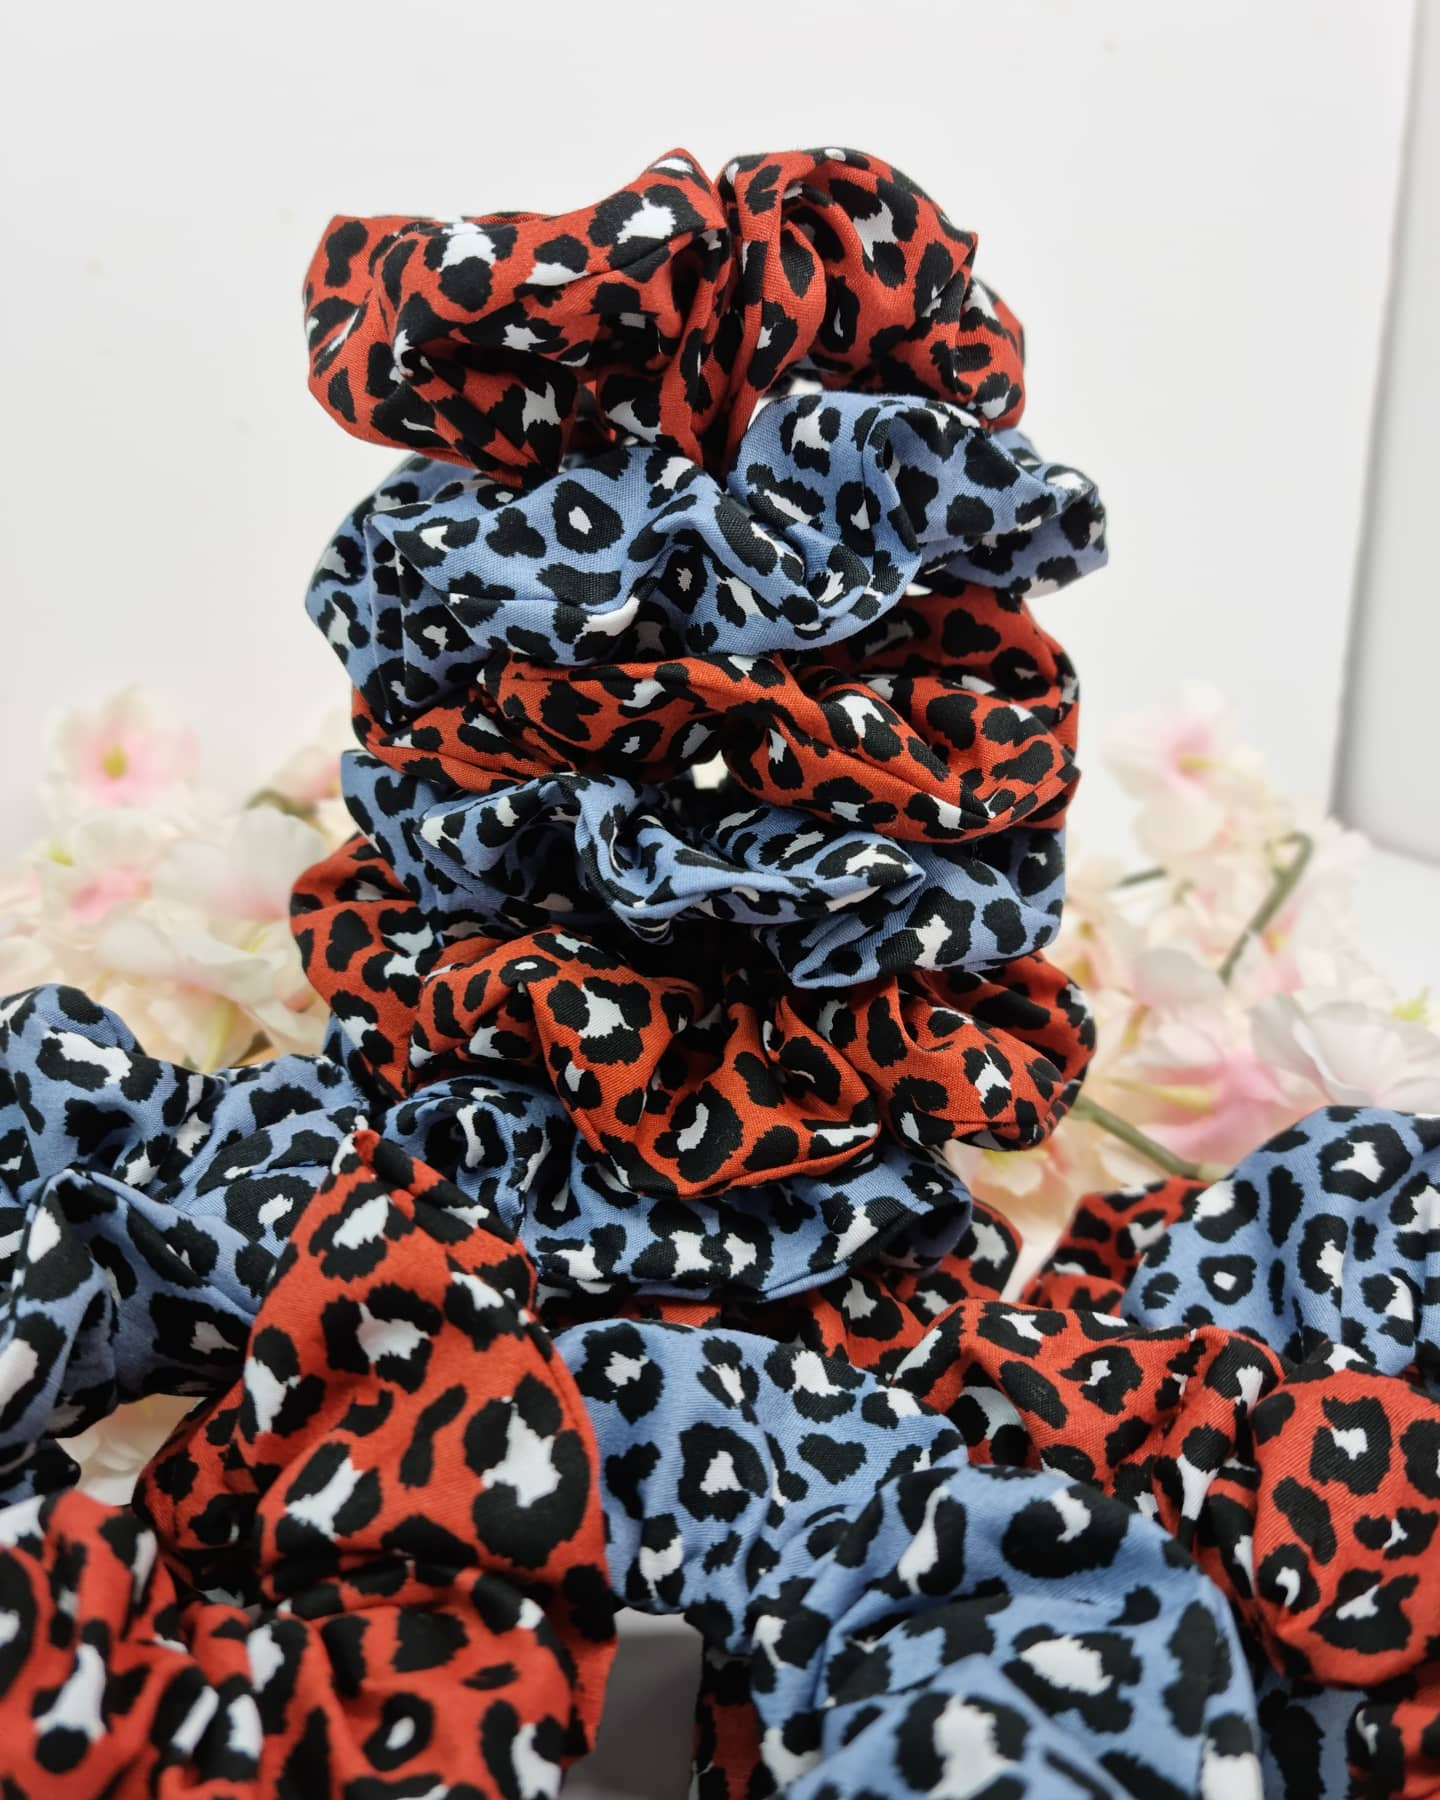 Sammi's Scrunchies patterned leopard stacked scrunchies